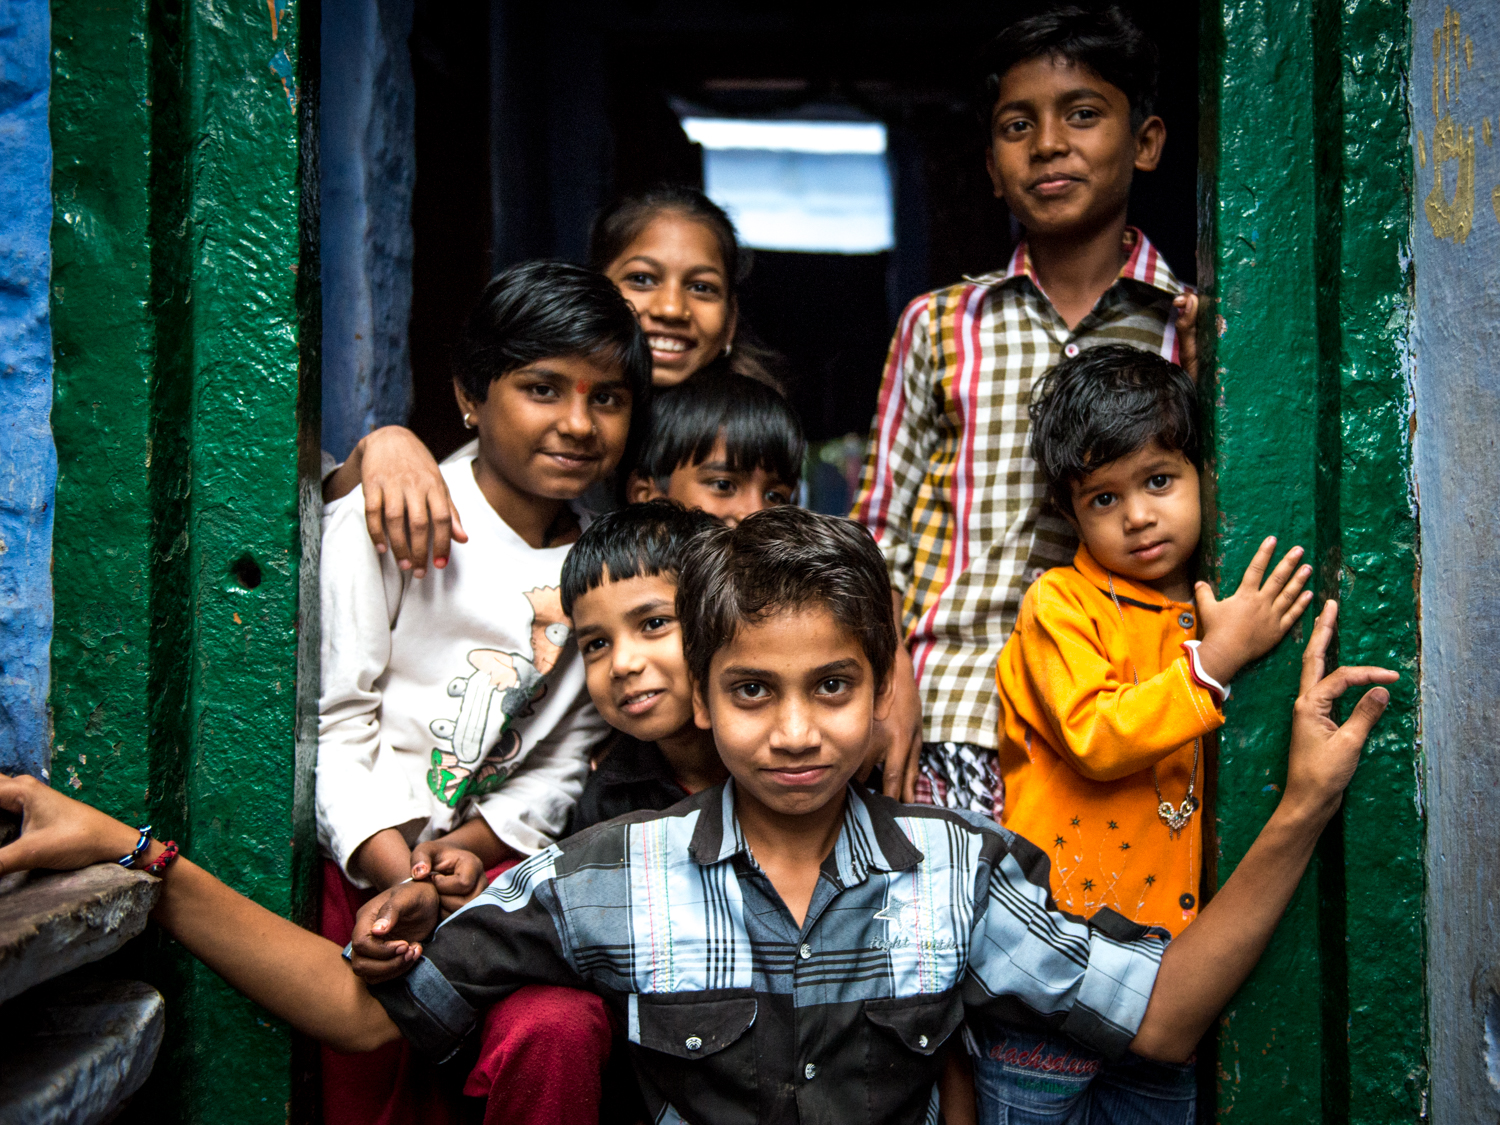 A boy in the middle creates a boundary between his family and me - Varanasi, India.